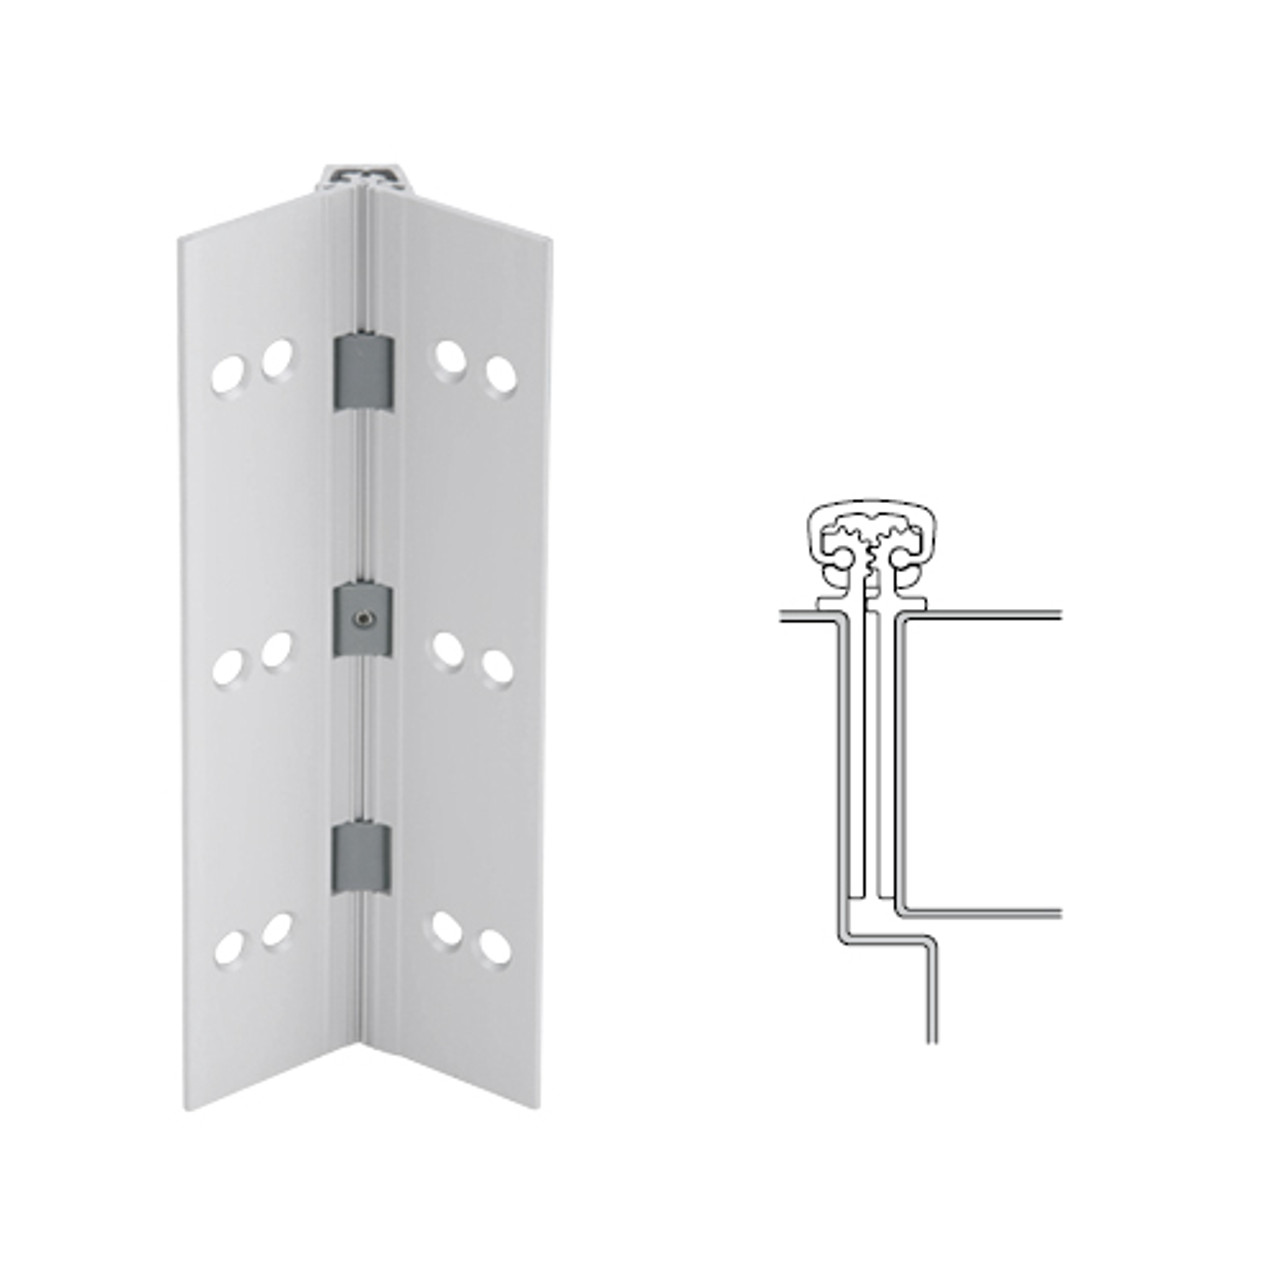 027XY-US28-95-SECHM IVES Full Mortise Continuous Geared Hinges with Security Screws - Hex Pin Drive in Satin Aluminum